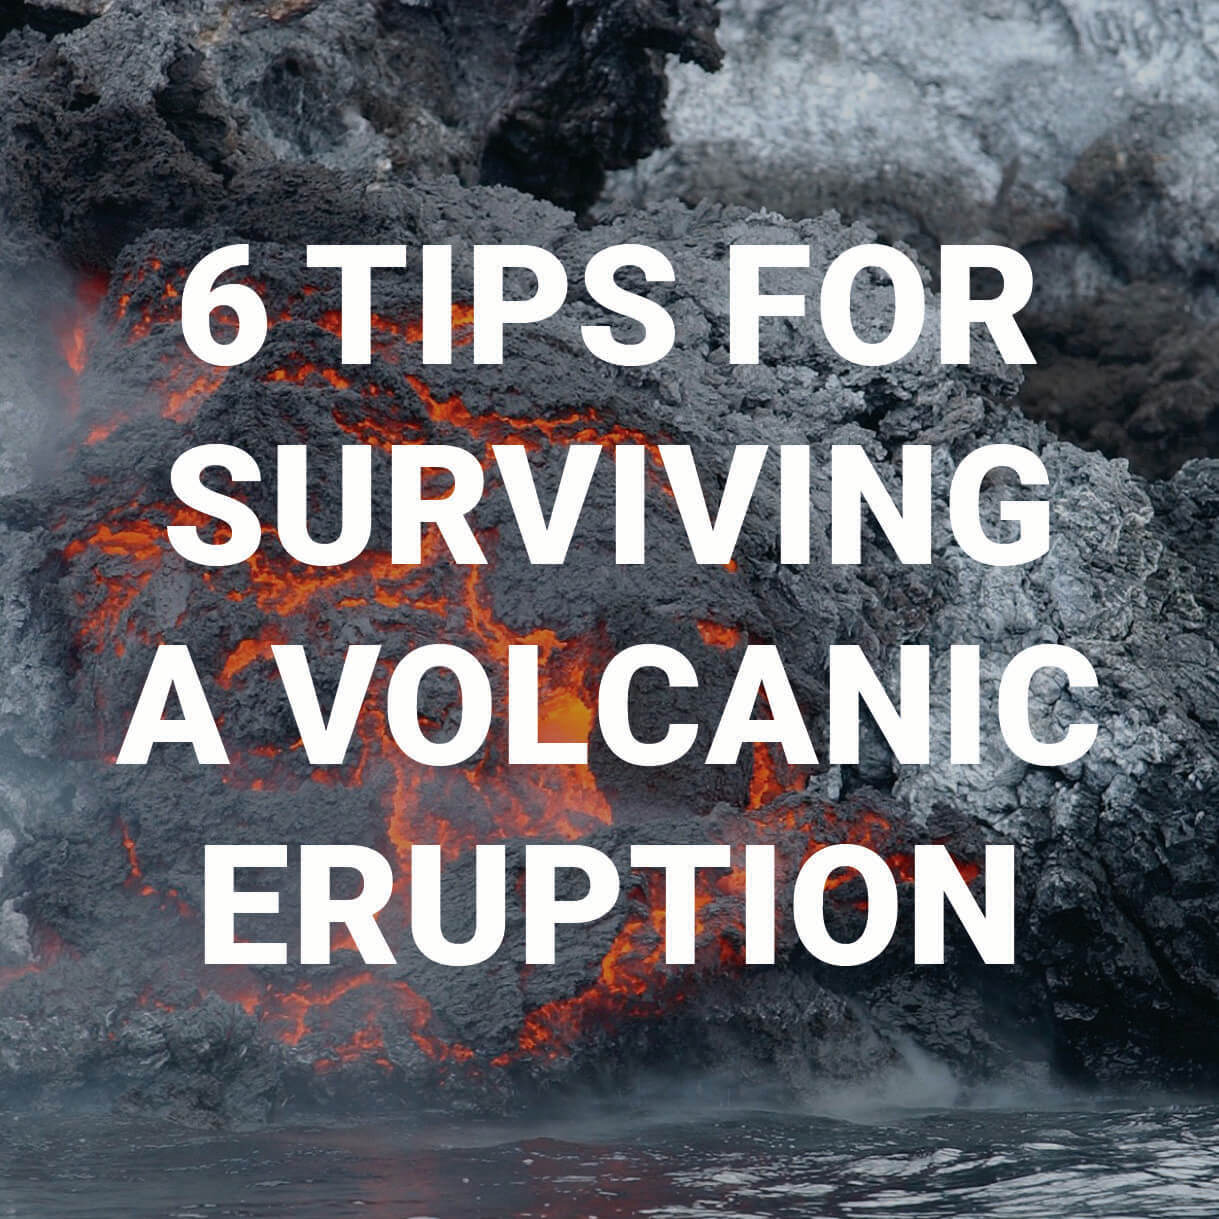 6 Tips For Surviving A Volcanic Eruption